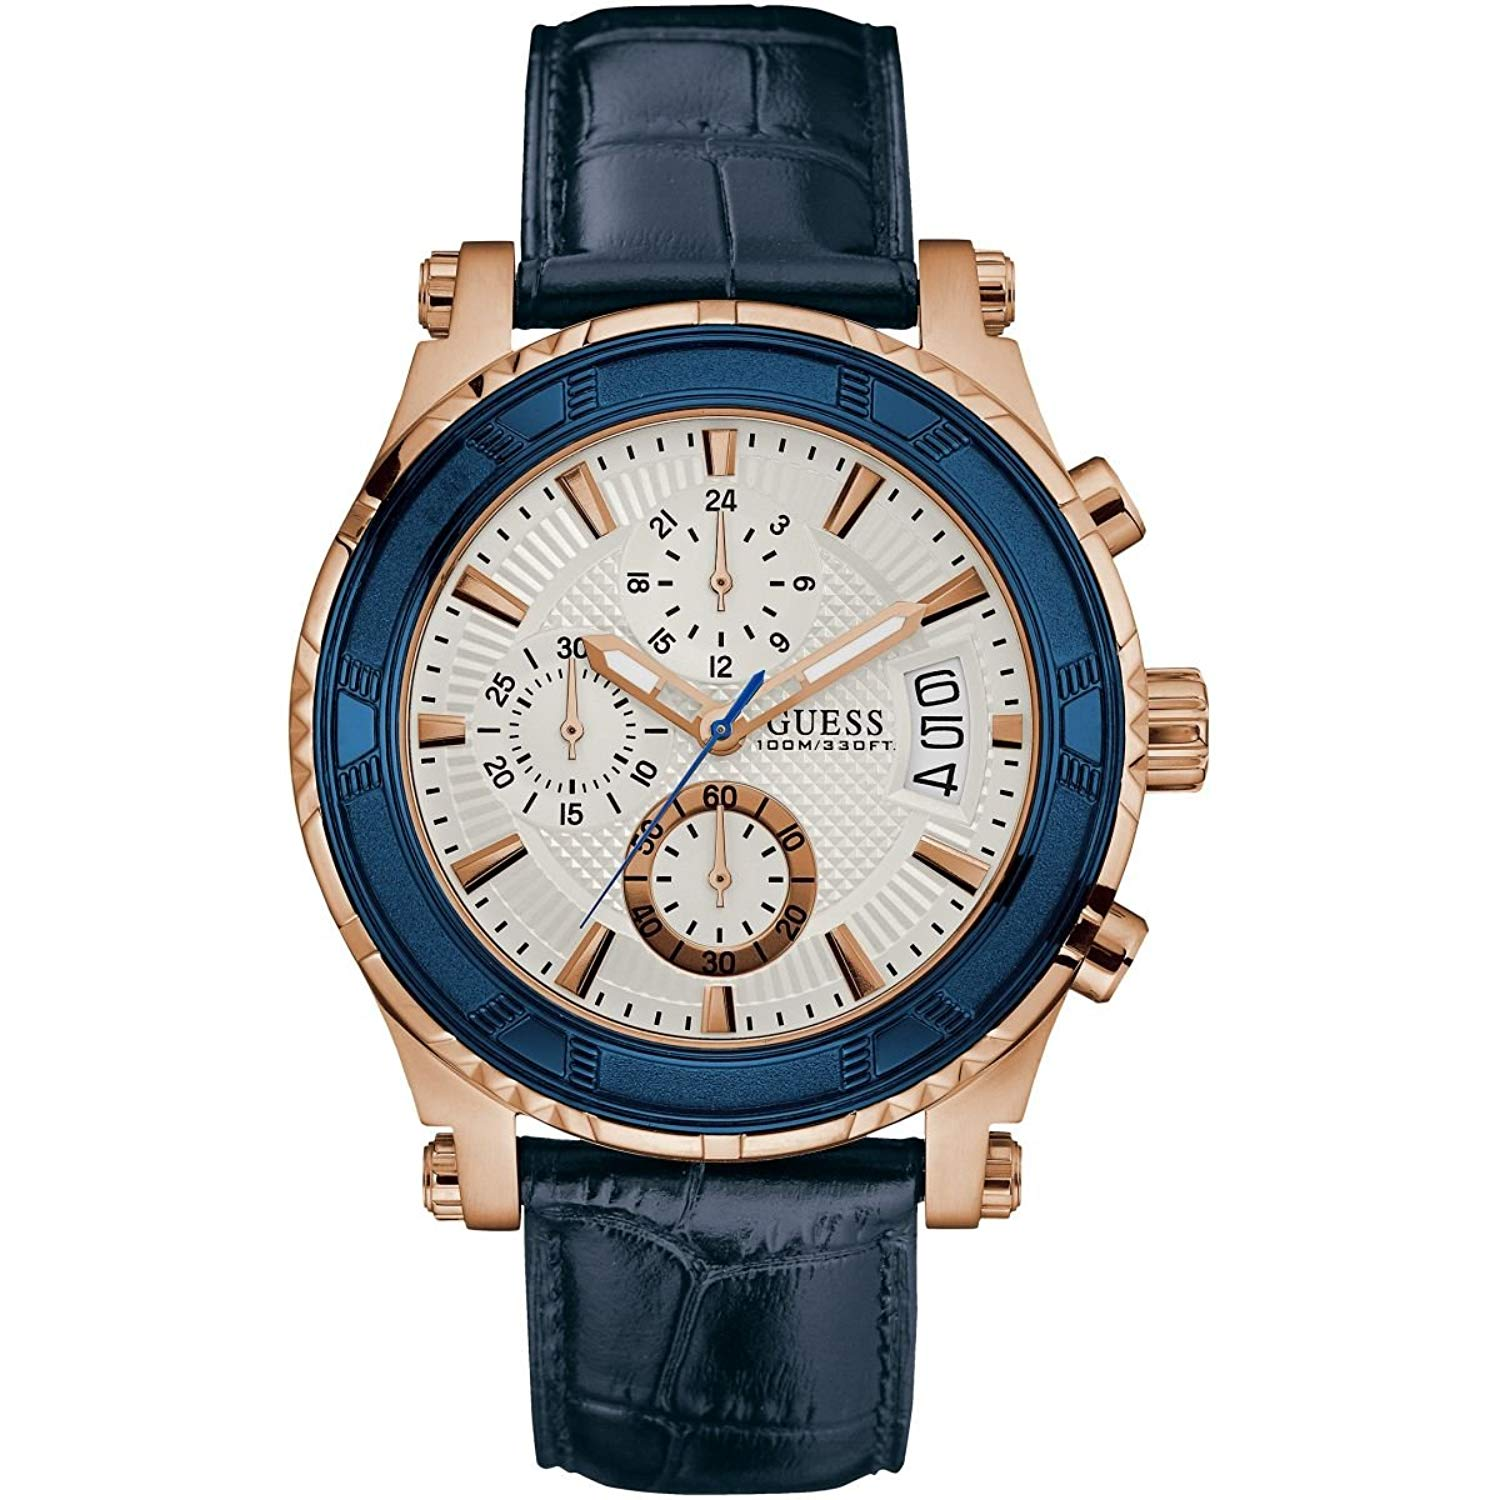 fed0e288b0f96 Get Quotations · Guess Watches Men s Guess Men s Leather Blue-Rose Gold  Watch